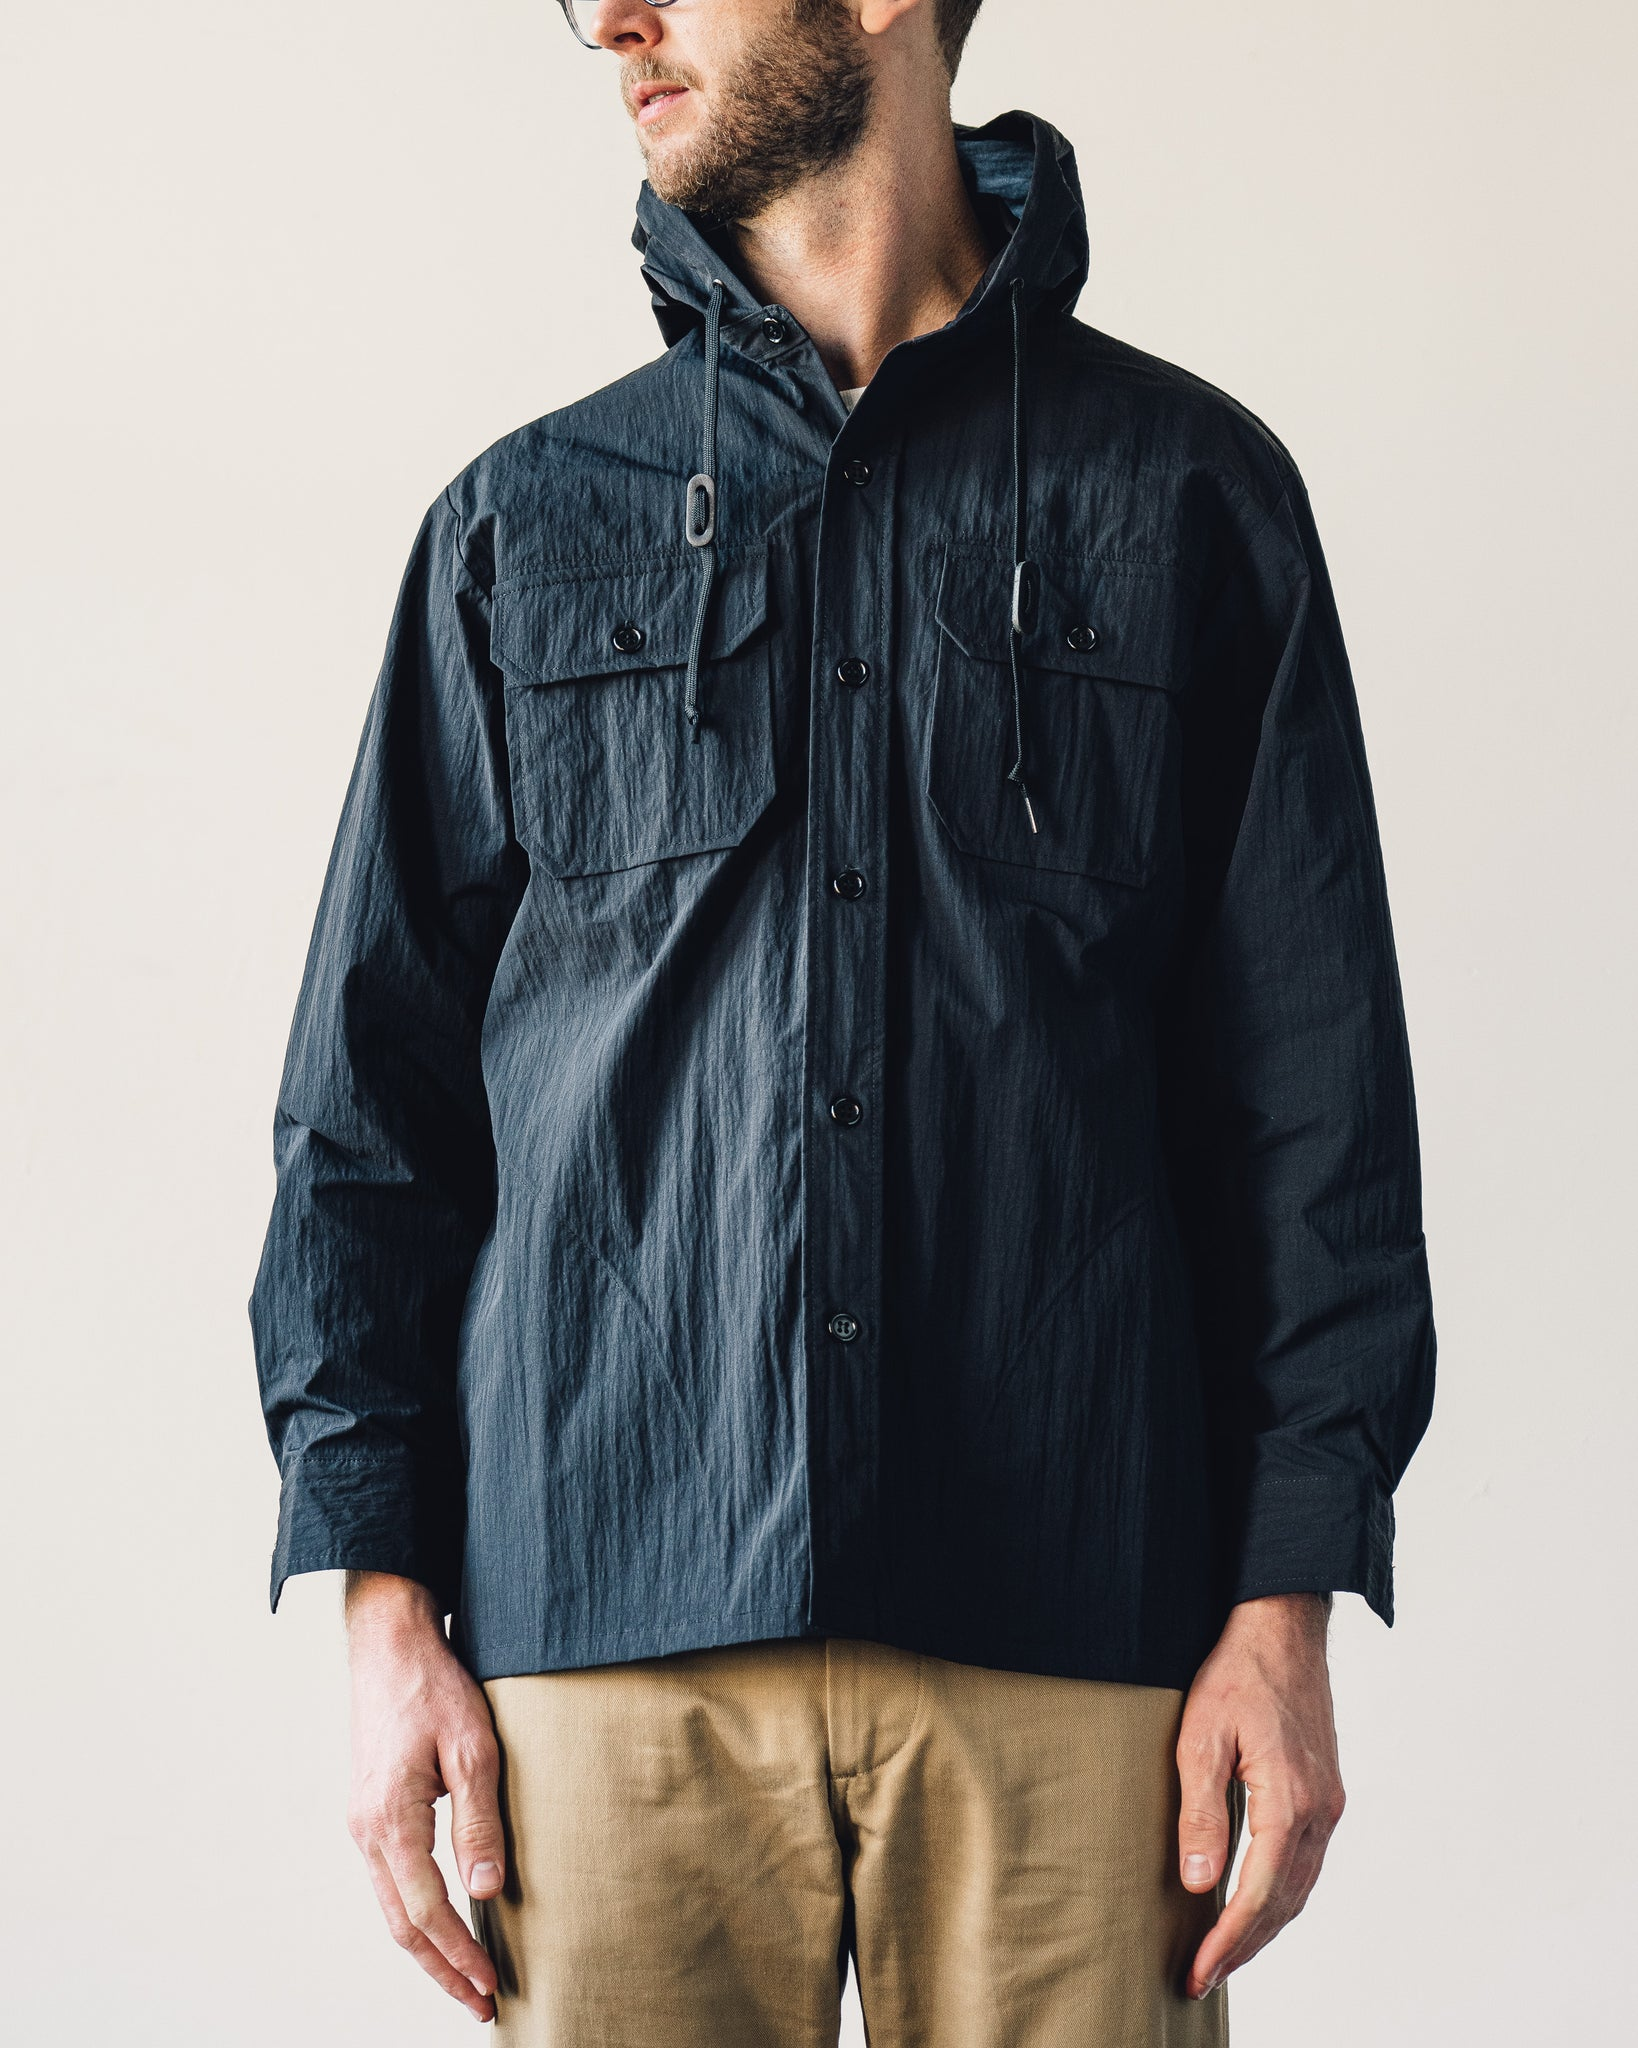 Orslow Hooded Shirt Jacket, Black